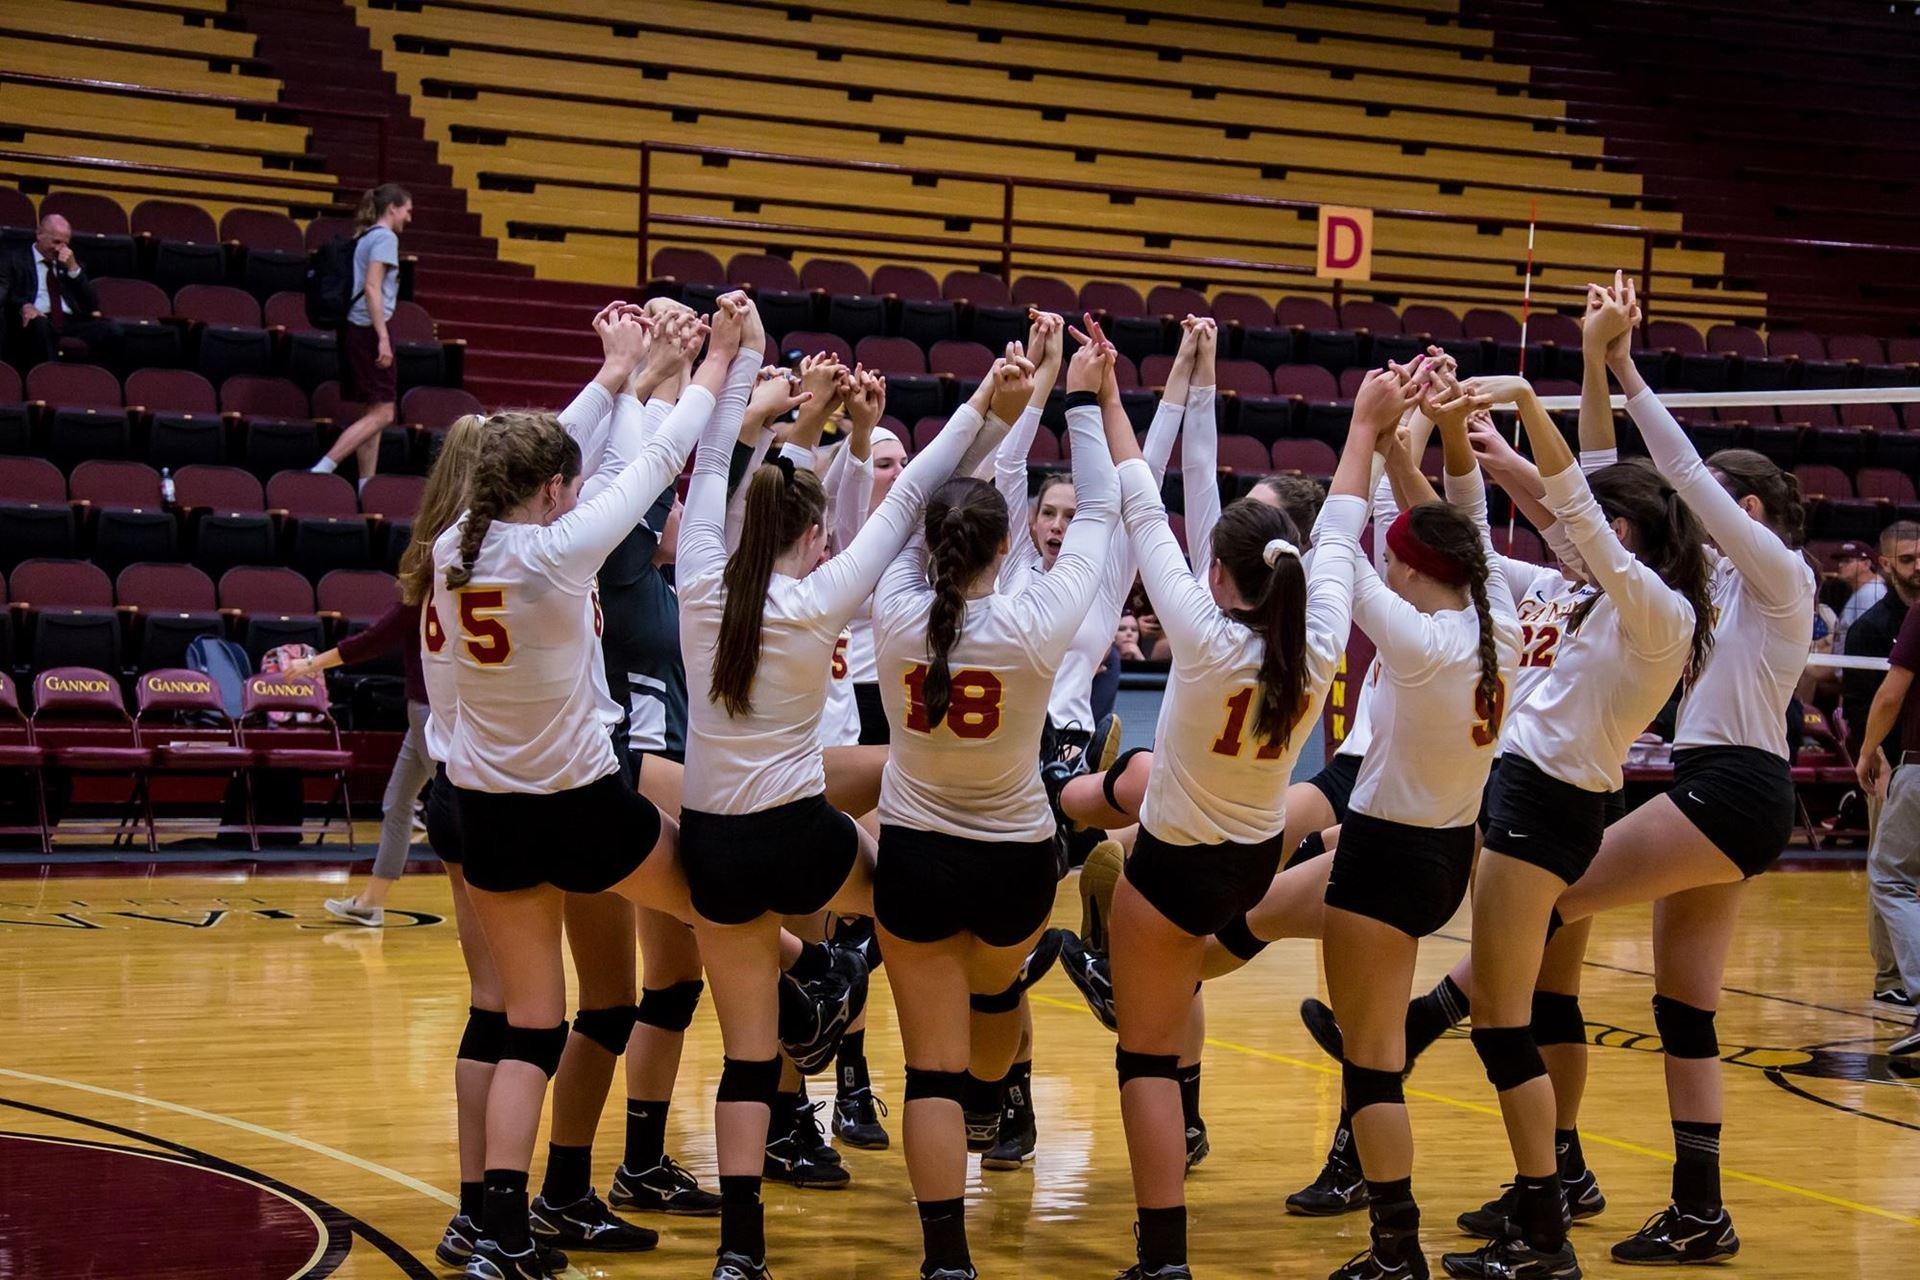 Gannon volleyball's 11-game win streak disrupted by Shepherd